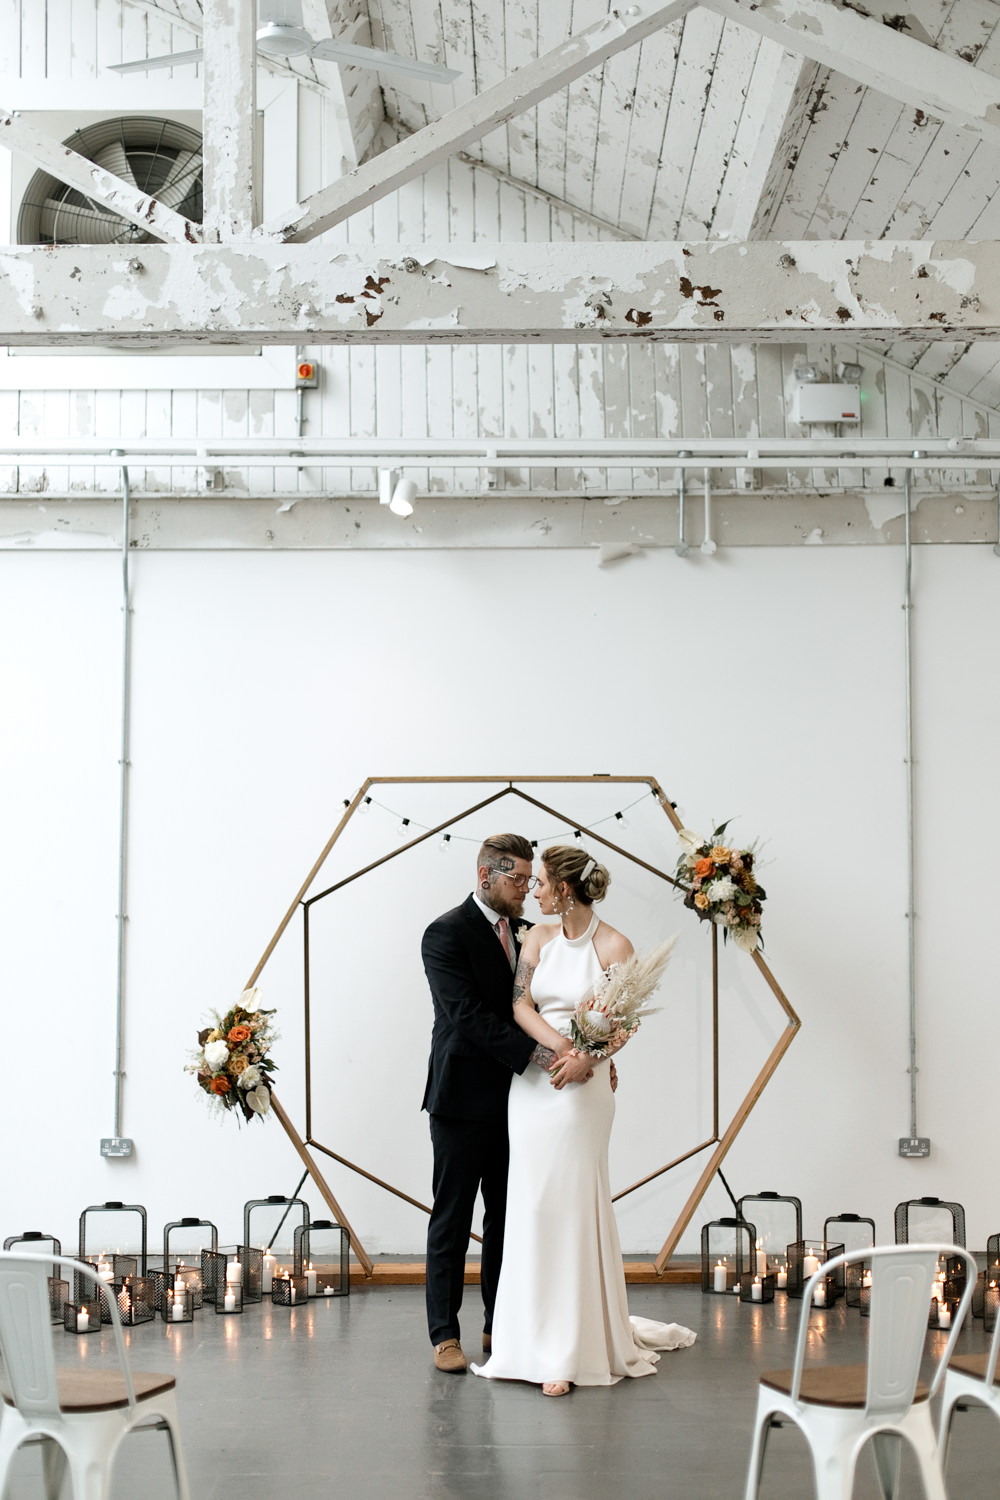 Hexagon Backdrop Arch Ceremony Decor Aisle Flowers Lights Moroccan Wedding Ideas Emma Louise Photography